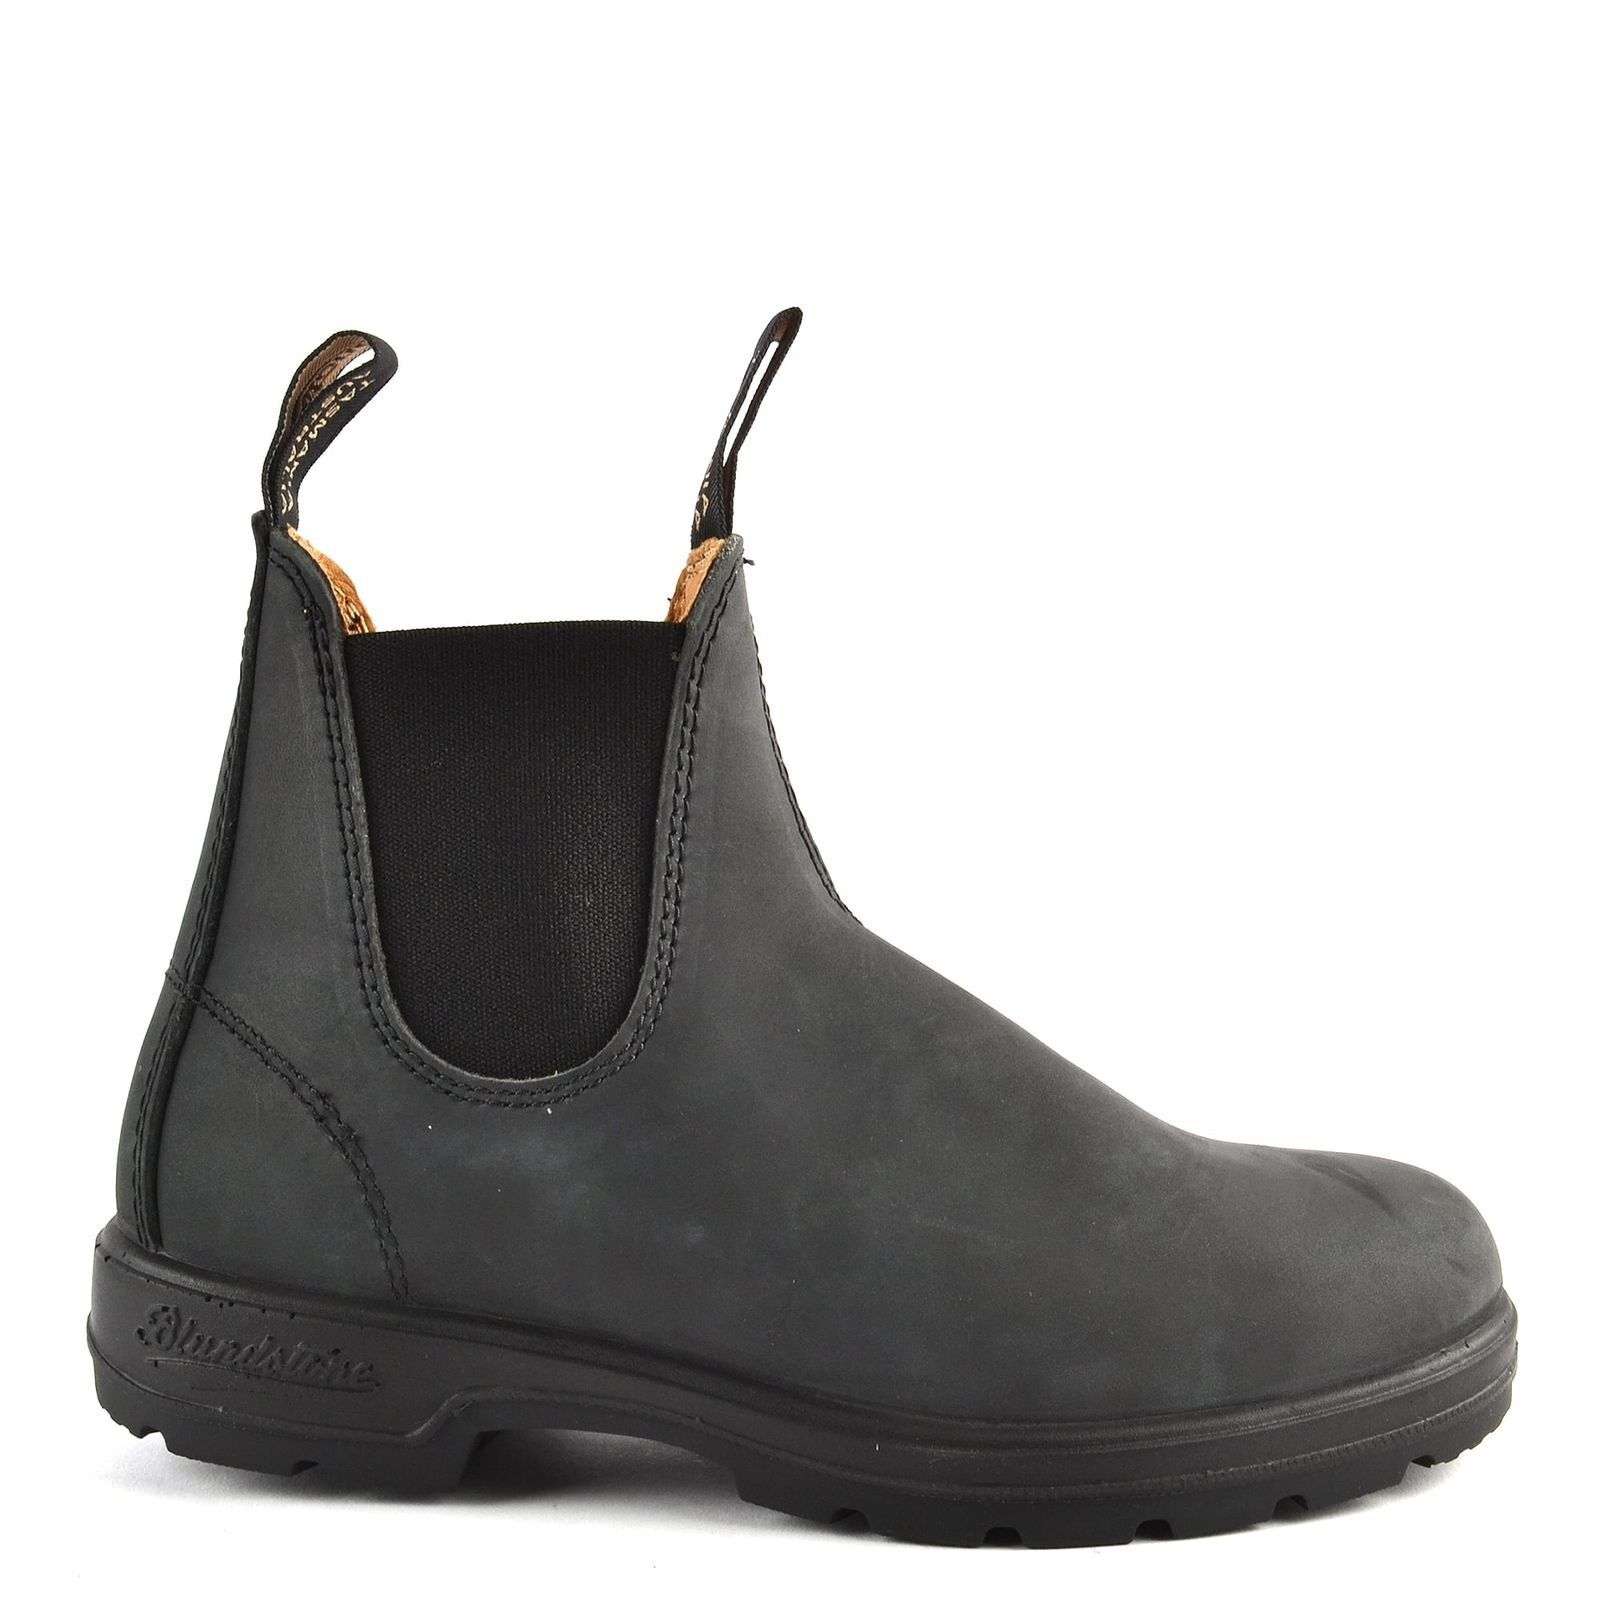 NEW Blundstone Style 587 Rustic Black Leather Boots for Wome